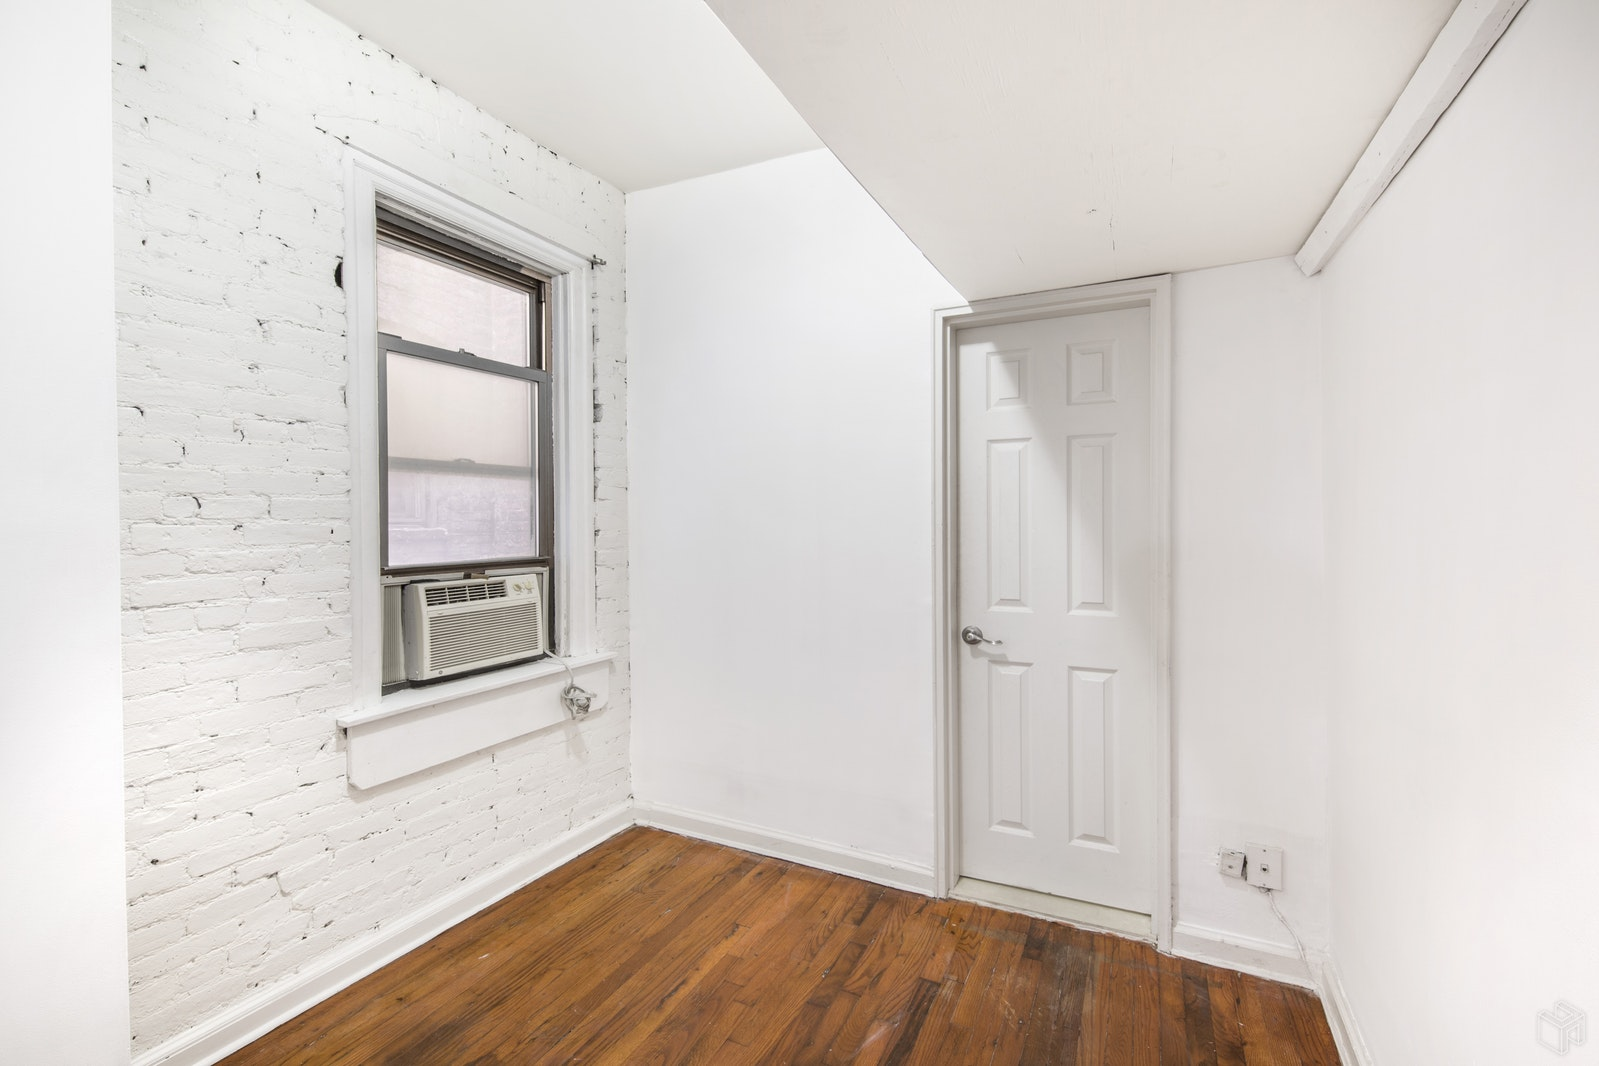 433 WEST 54TH STREET 12, Midtown West, $365,000, Web #: 18950580